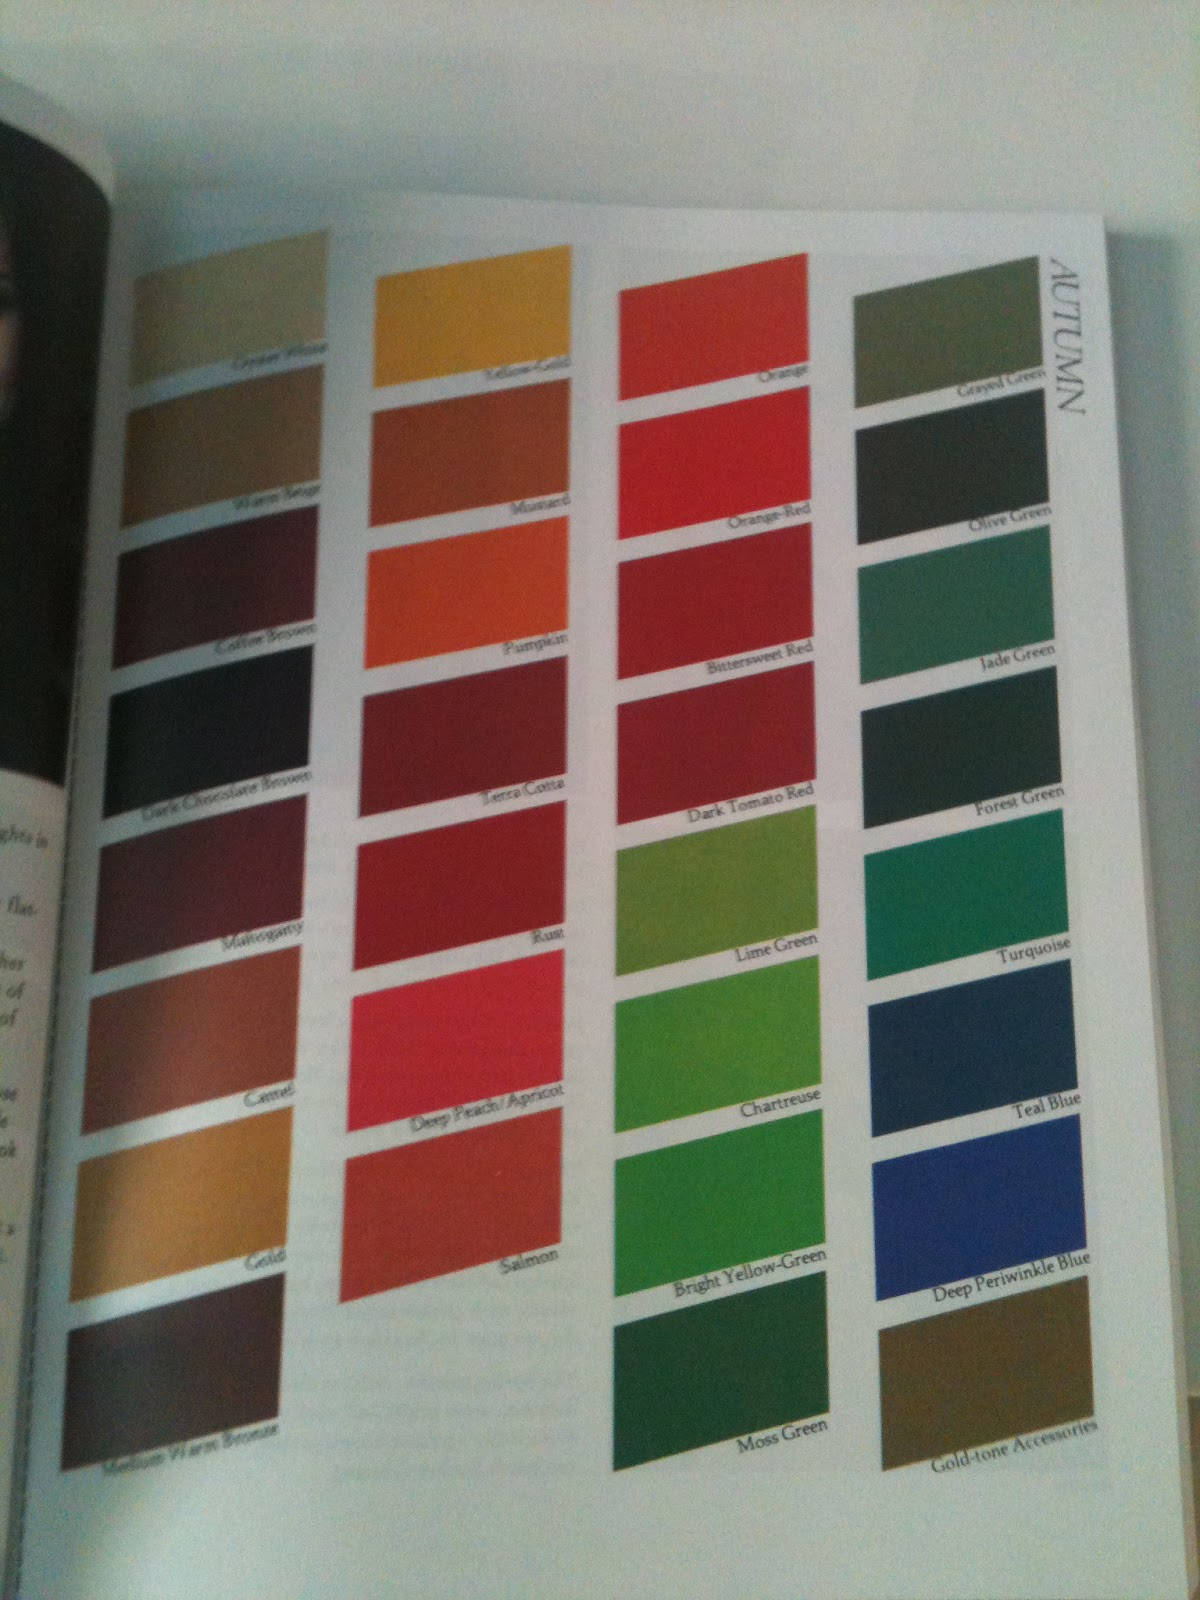 book color me beautiful : These Color Seasons Are Broken And In Depth With Info I Got From The Book Color Me Beautiful How To Find Your Perfect Colors